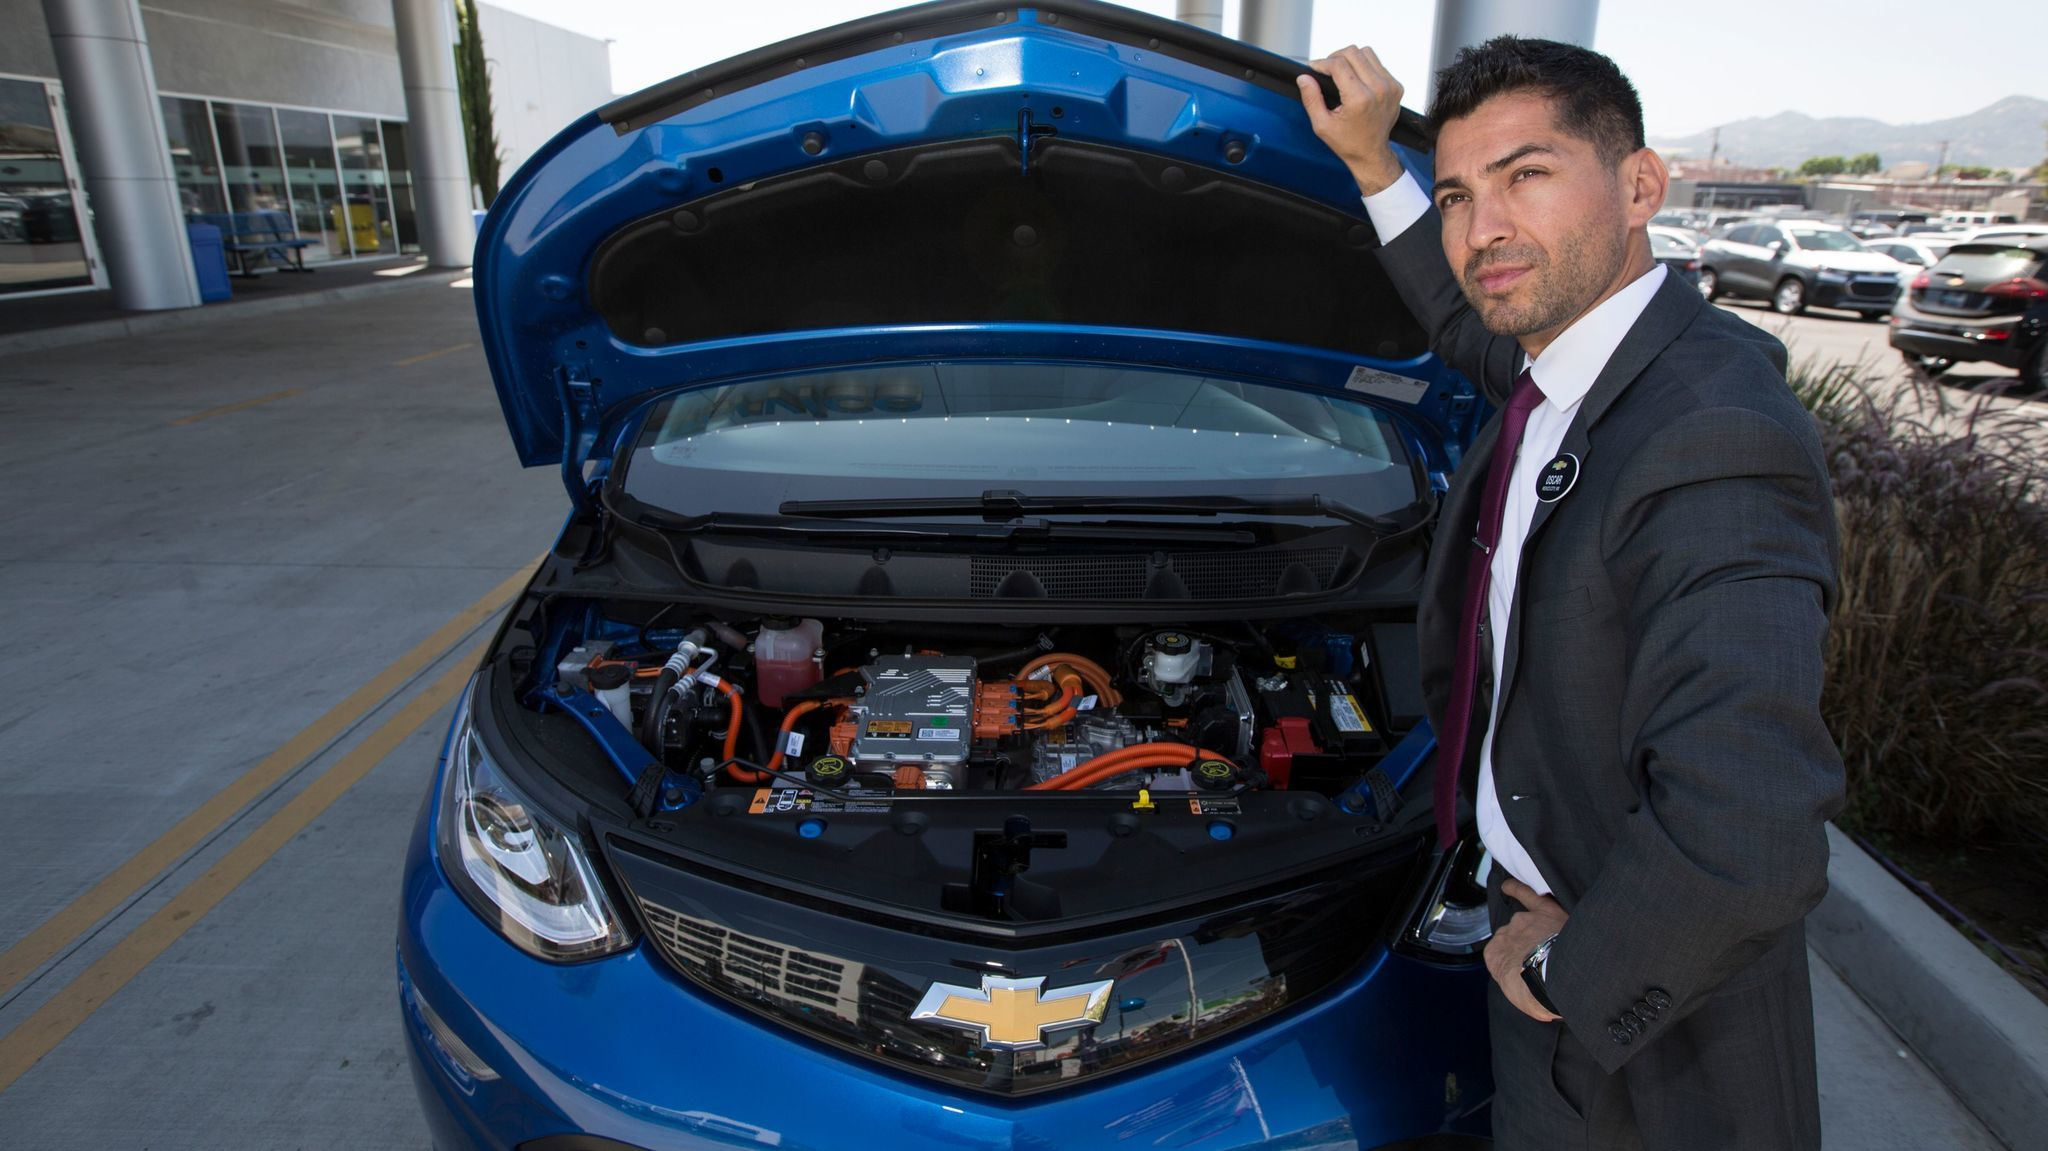 Oscar Gutierrez of Community Chevrolet in Burbank under the hood of a Bolt electric car.